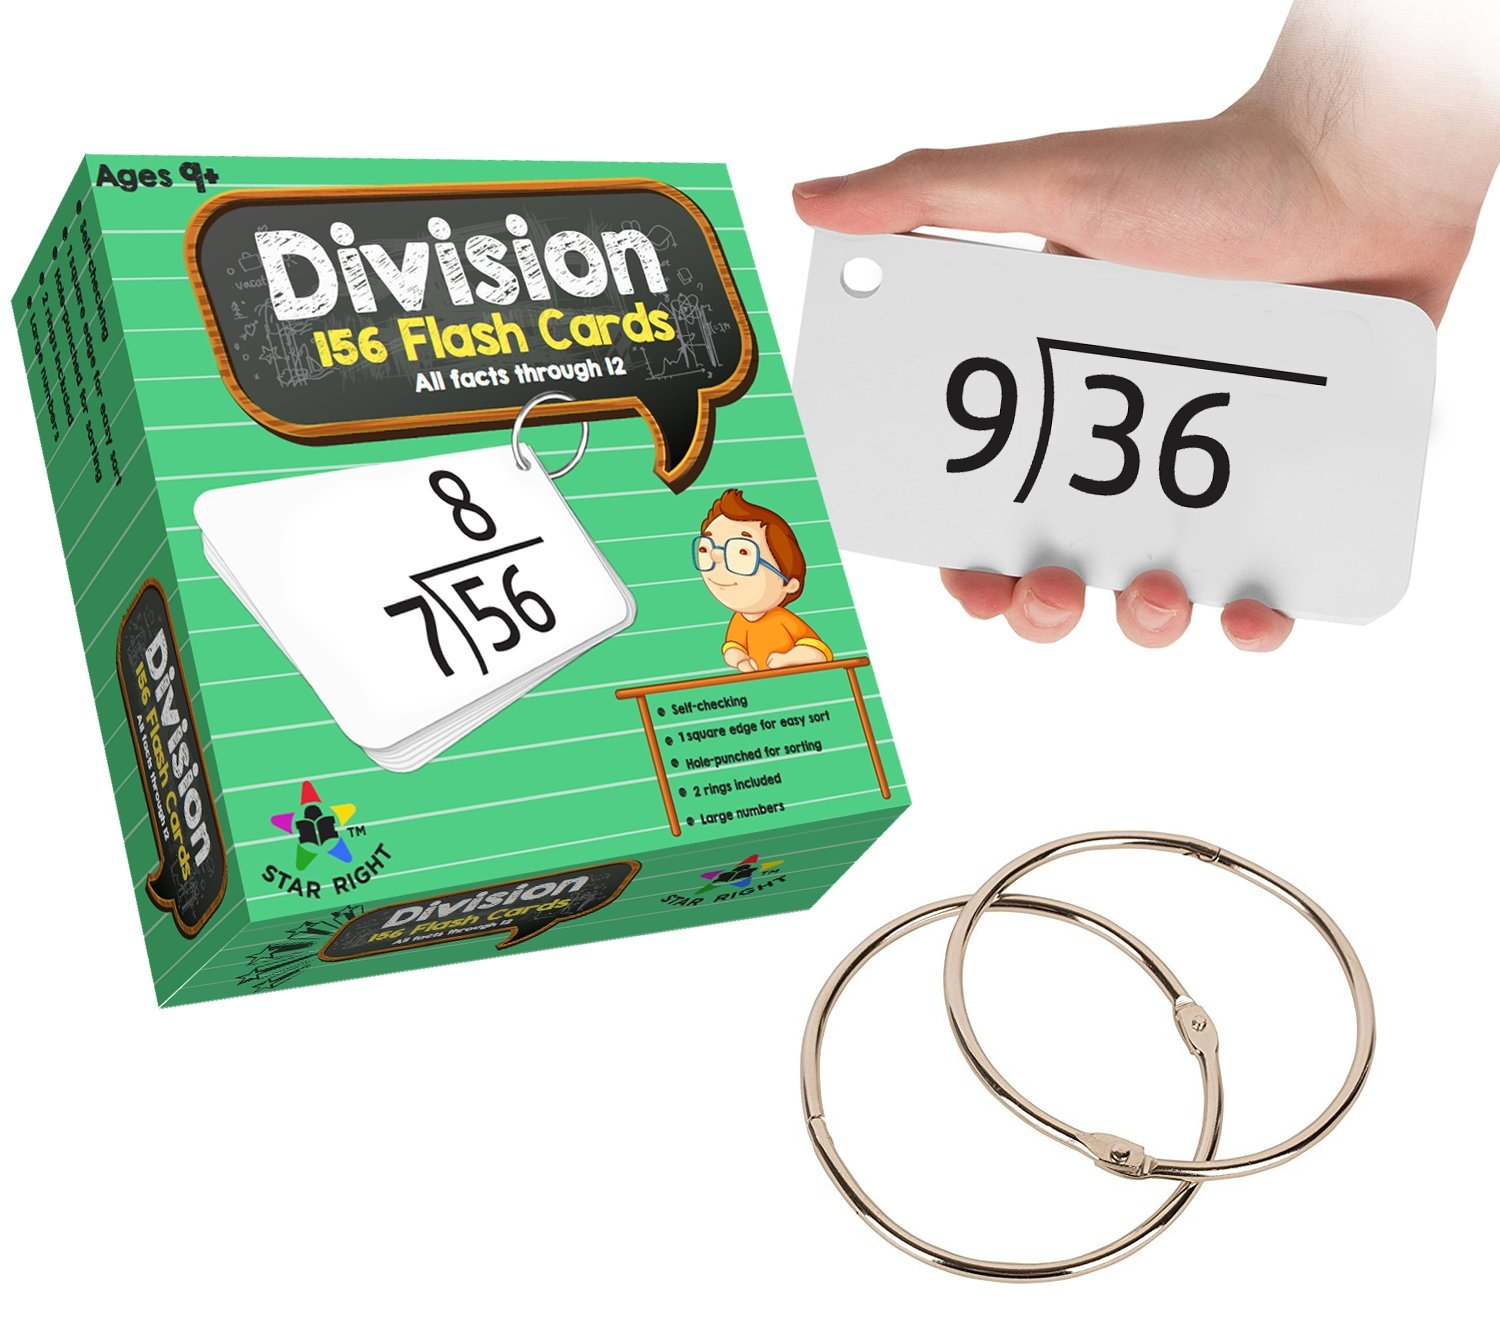 amazoncom star right education math division flash cards 0 12 all facts 156 cards with 2 rings toys games